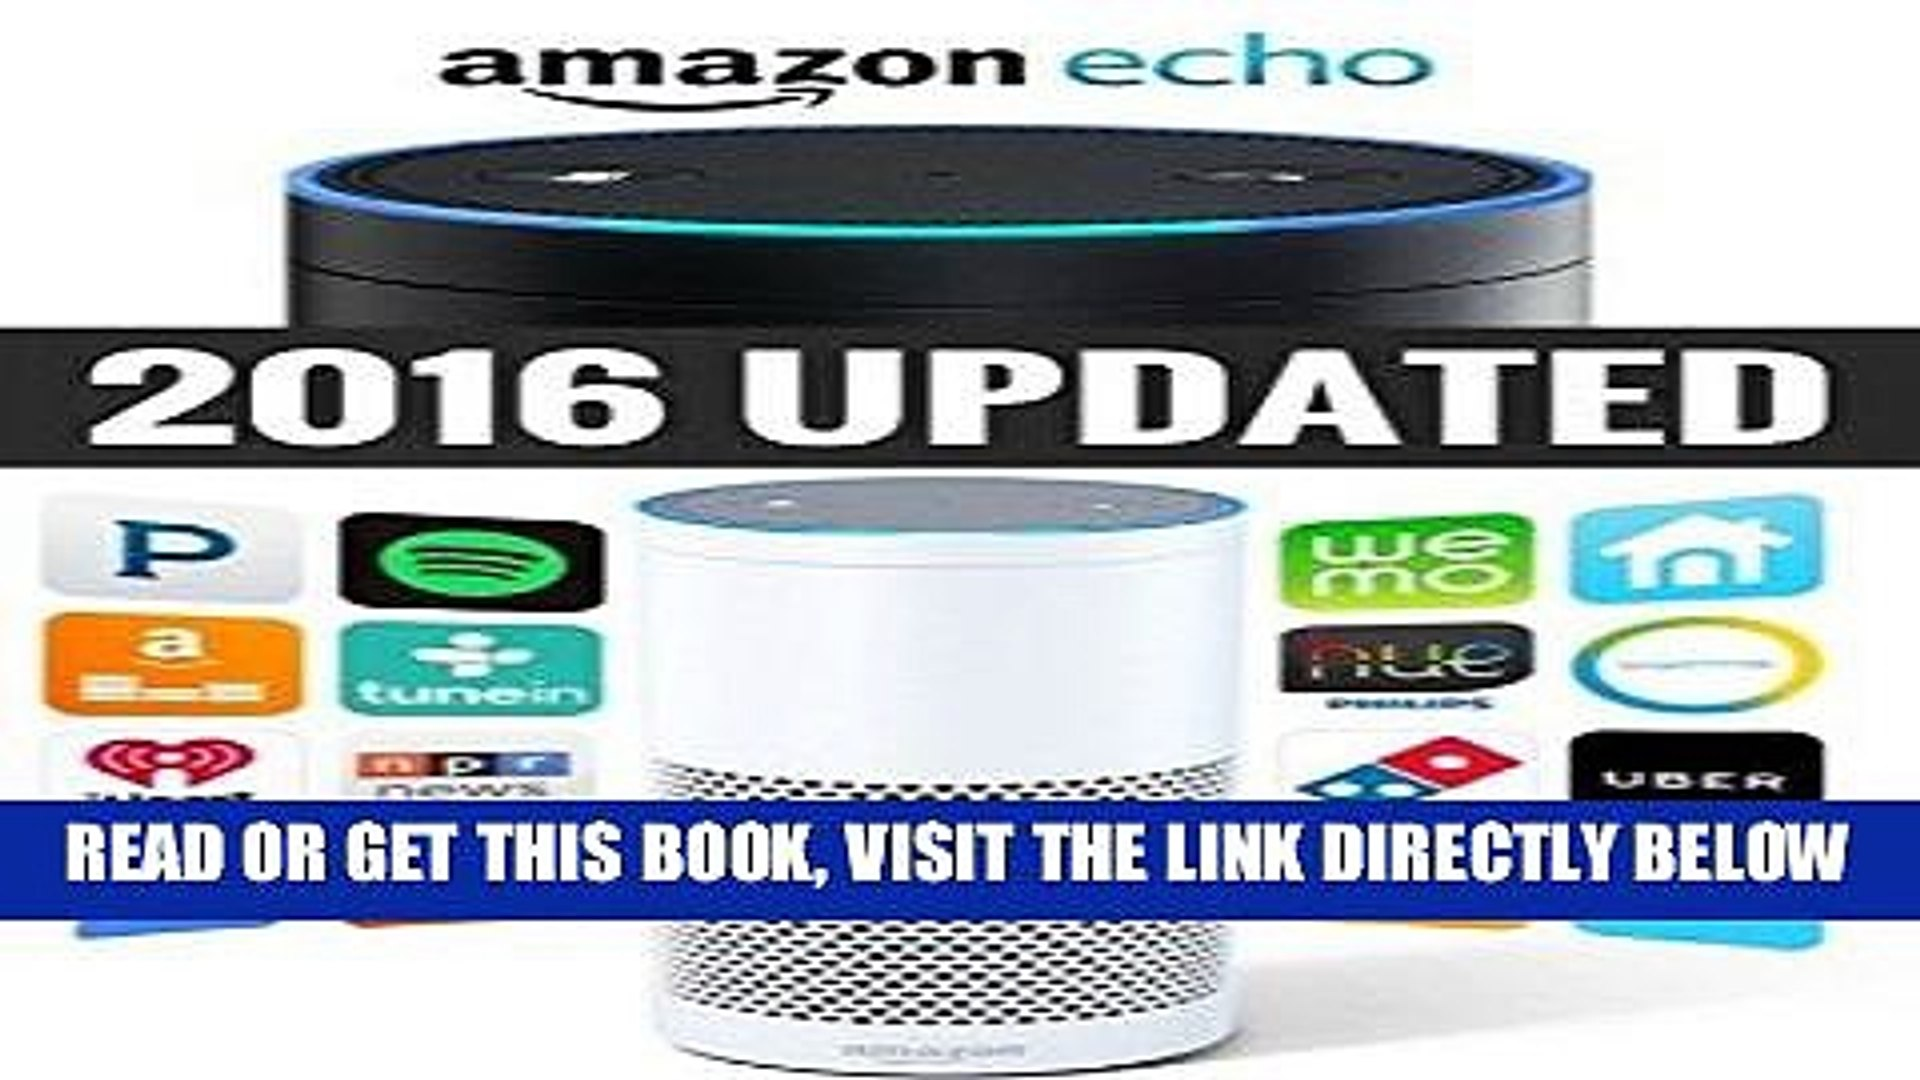 [Free Read] Amazon Echo: Amazon Echo Advanced User Guide (2016 Updated) (Echo, Amazon Echo User